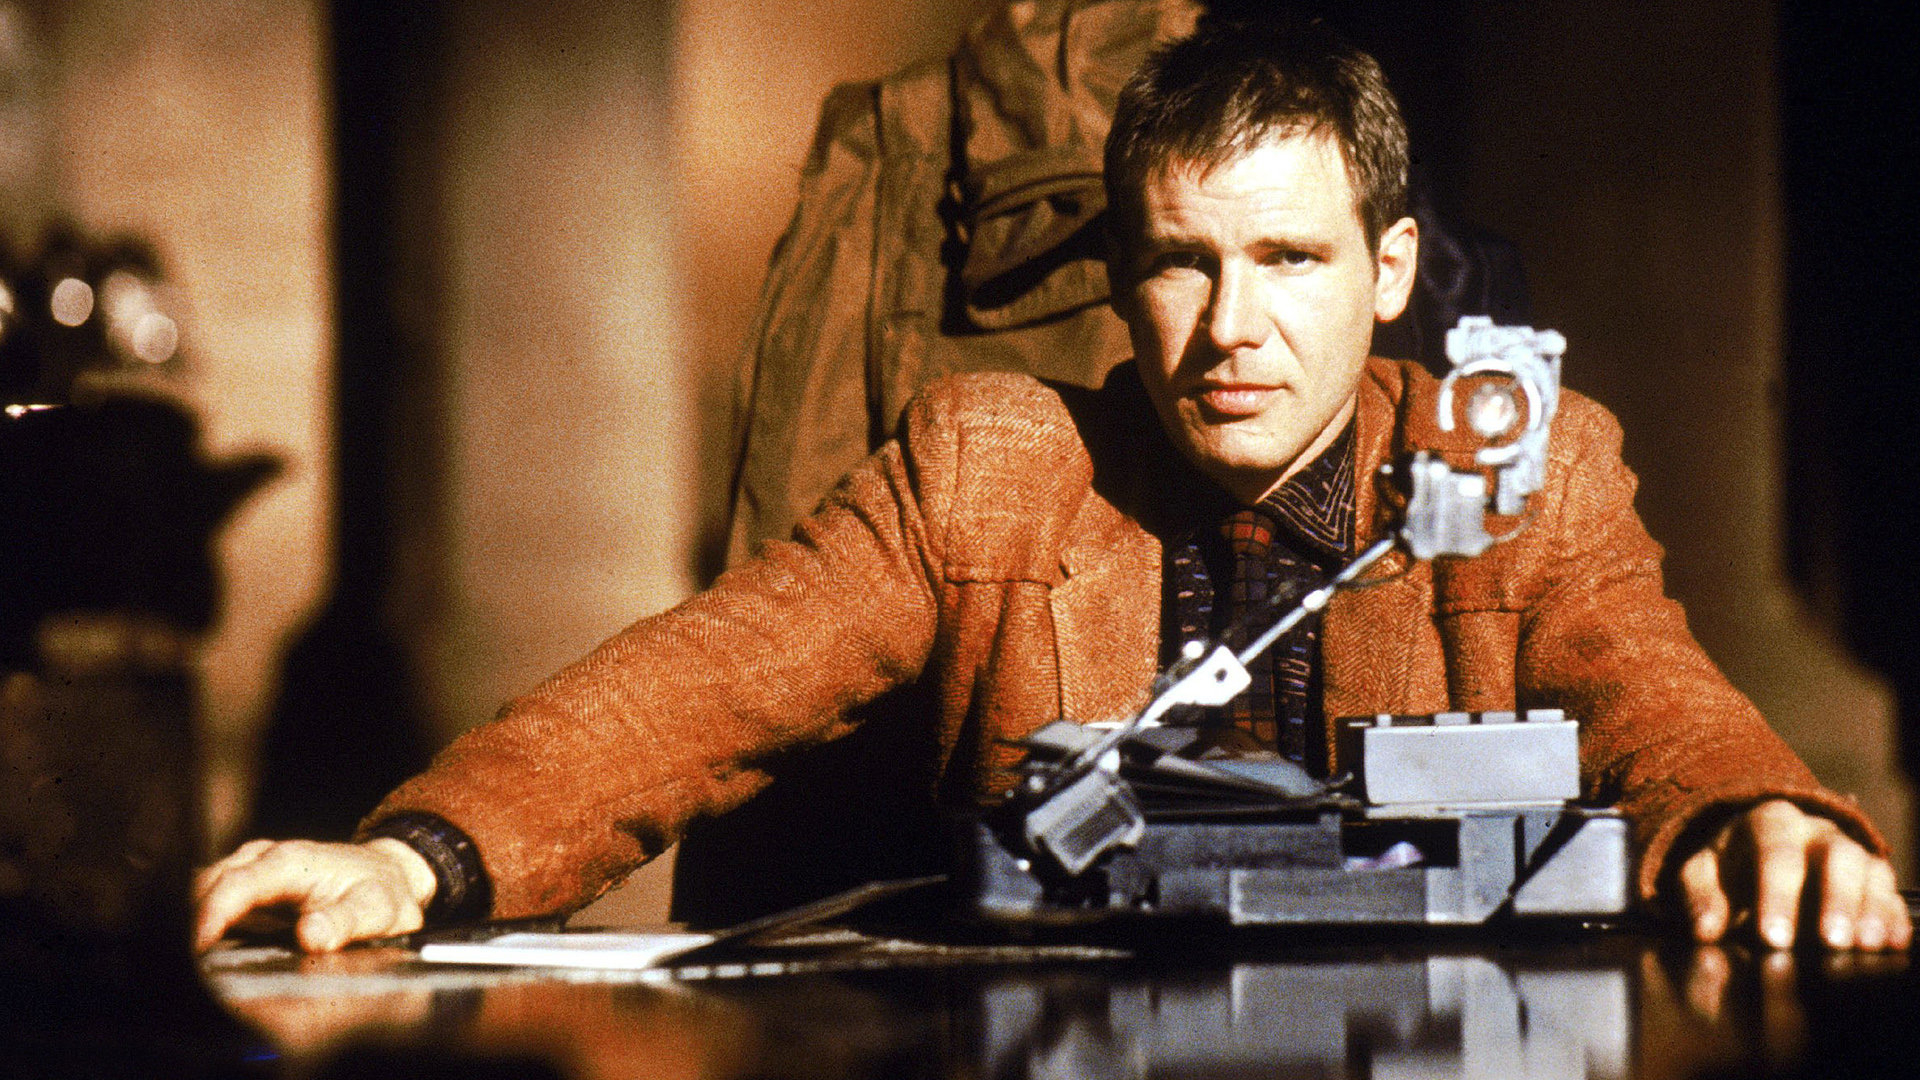 idesign blade runner 1982 08